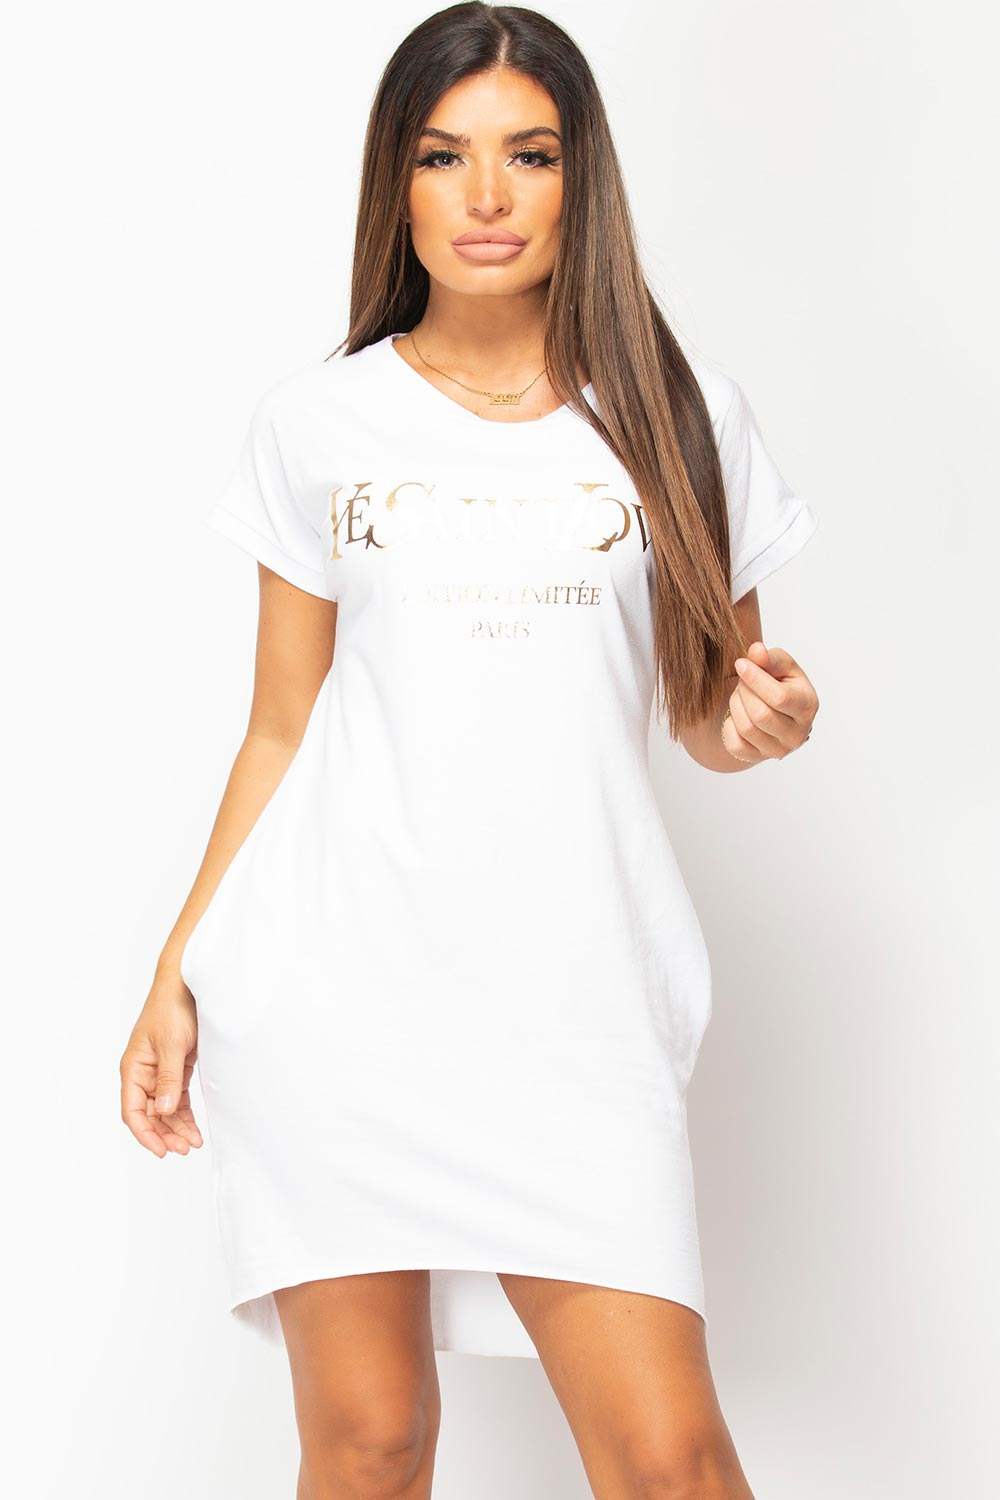 ye saint love slogan t shirt dress